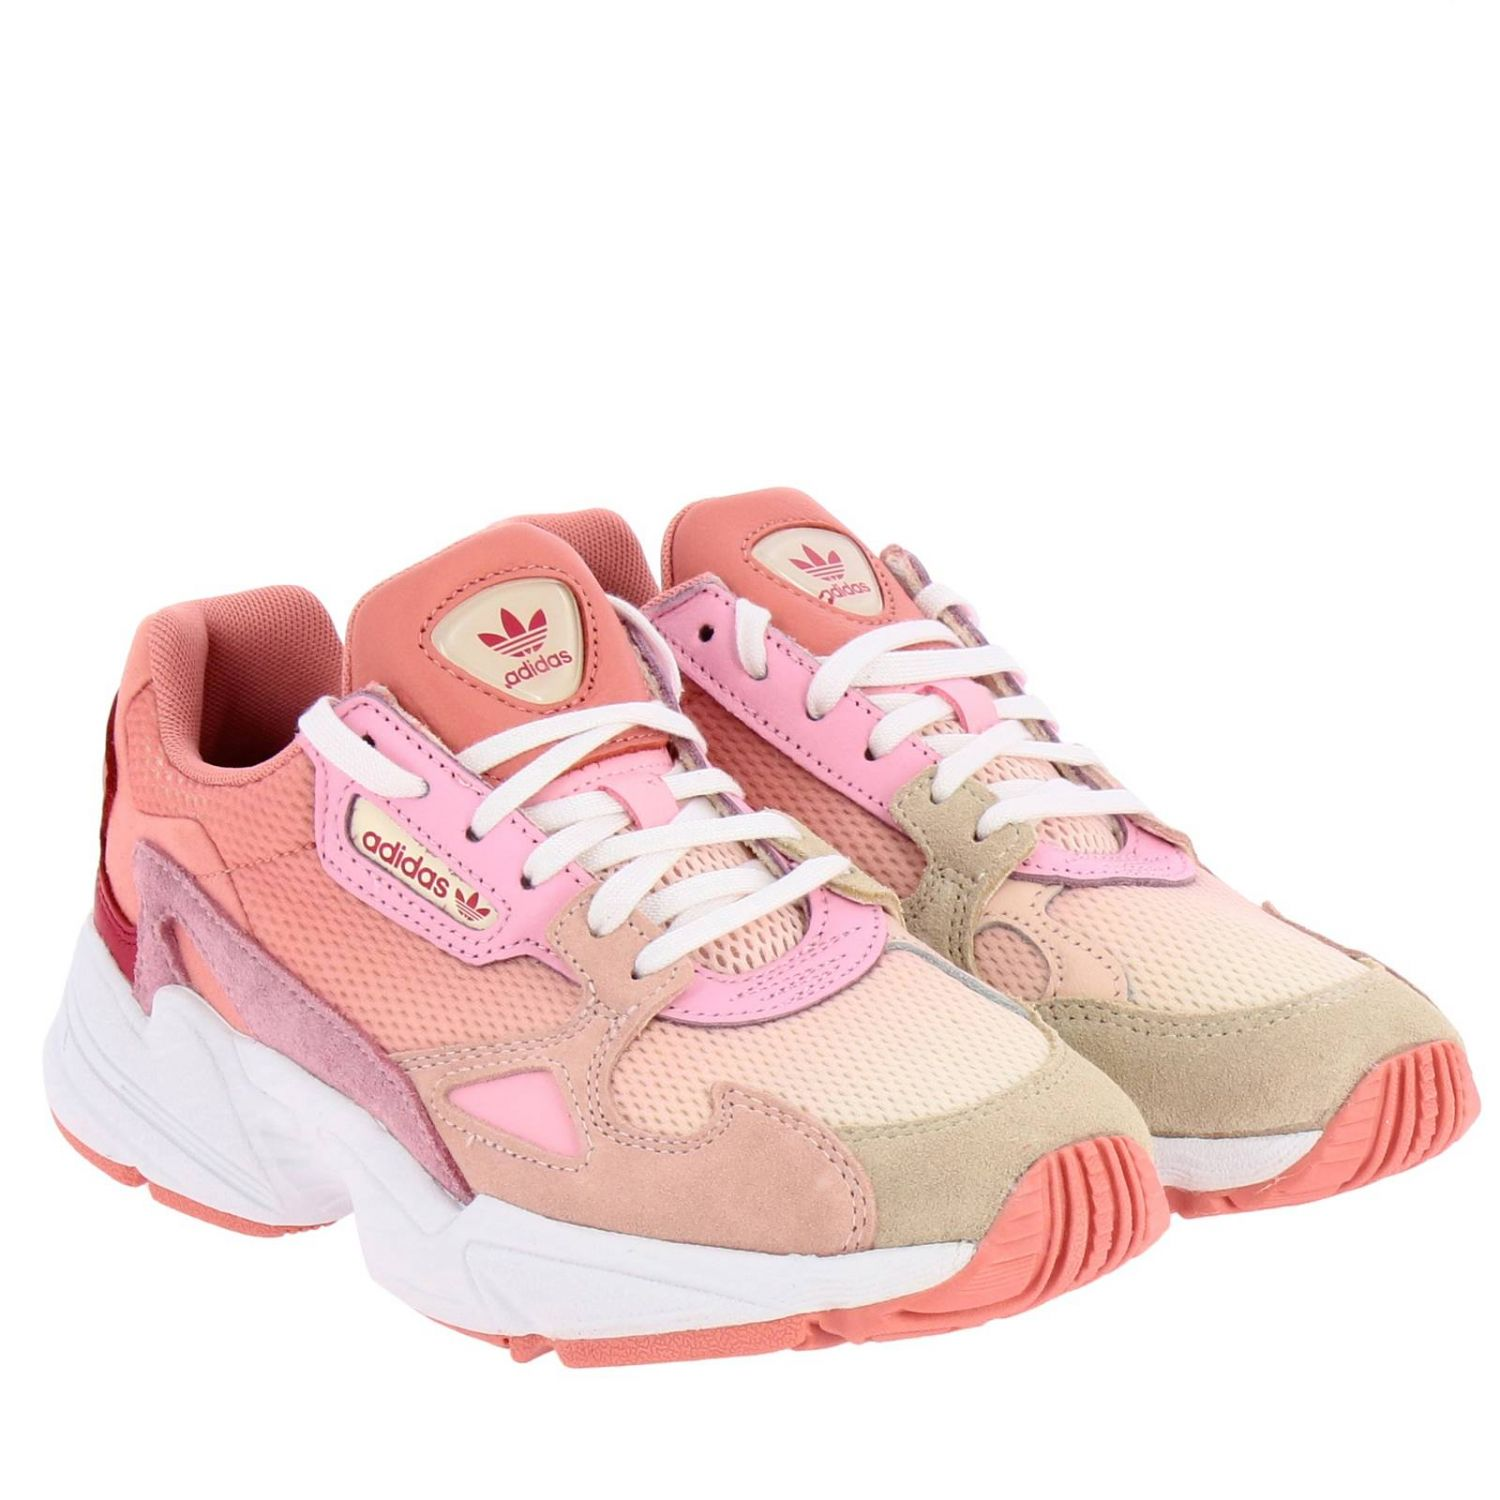 Sneakers Adidas Originals: Sneakers Falcon W Adidas Originals in rete pelle e camoscio rosa 2